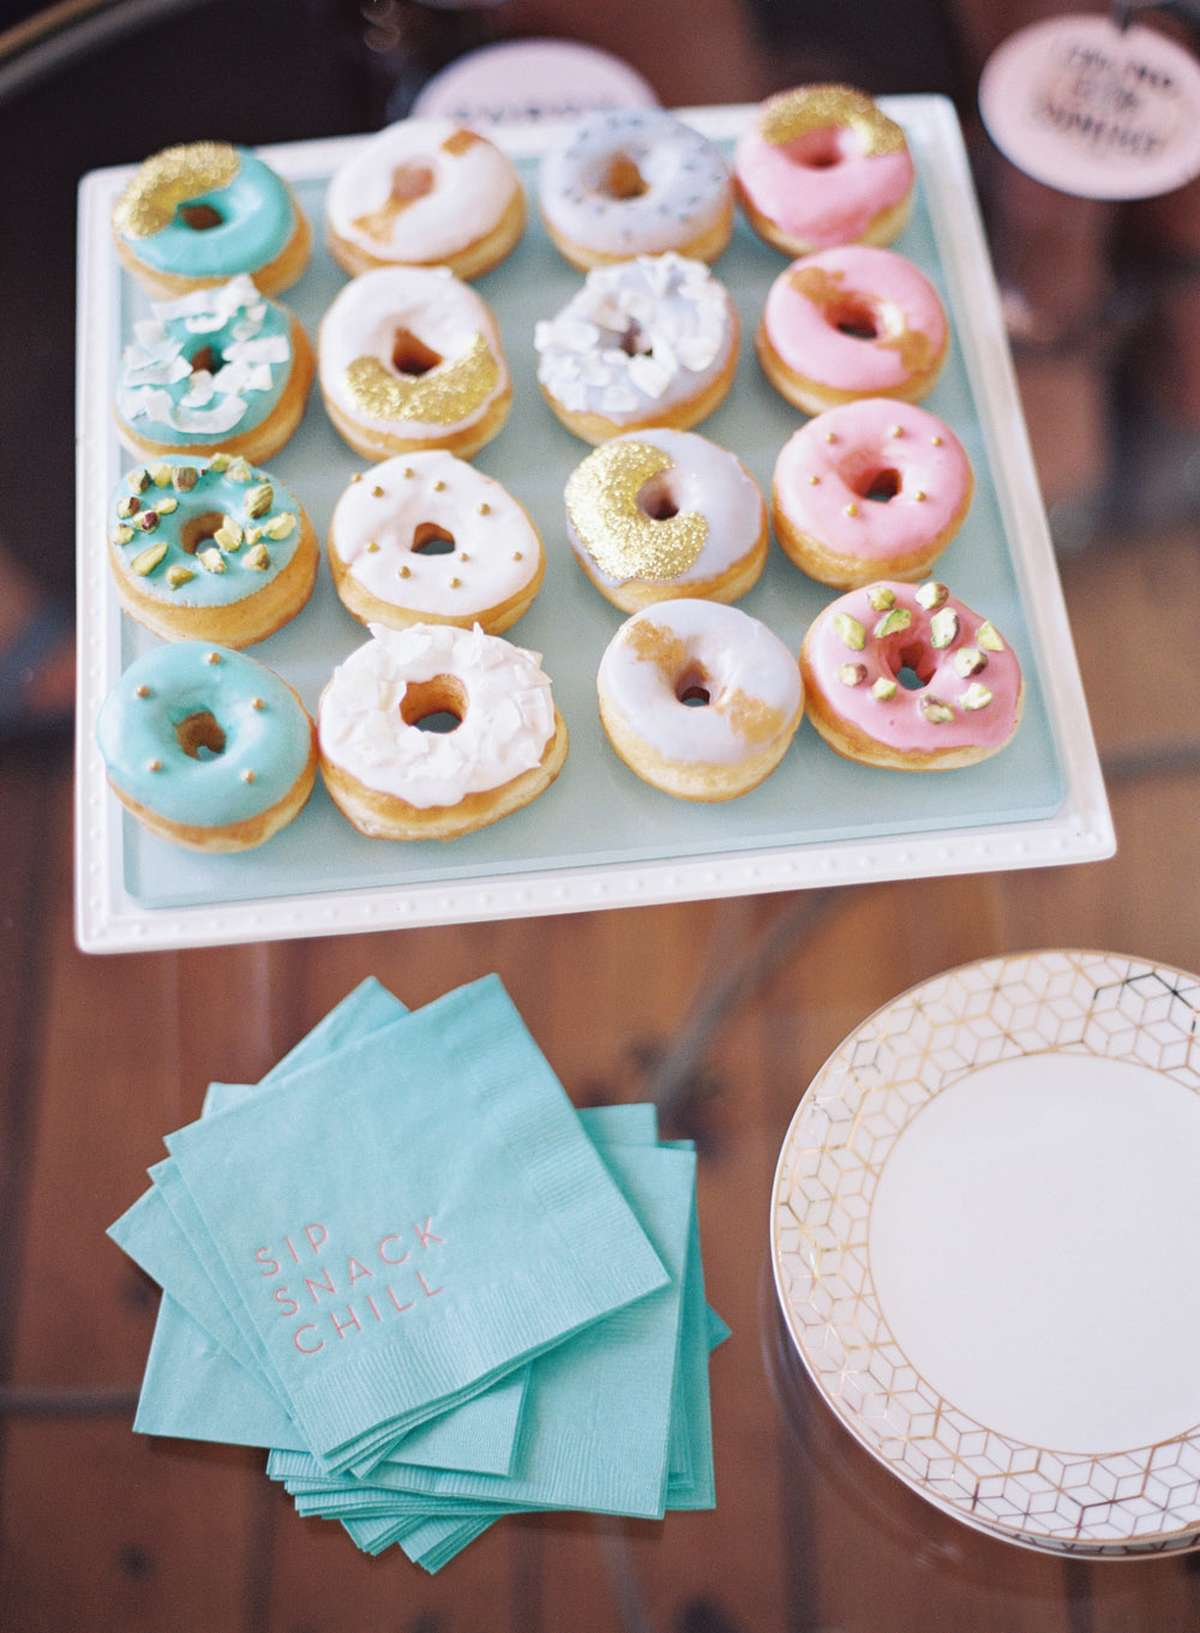 personalized cocktail napkins with donuts